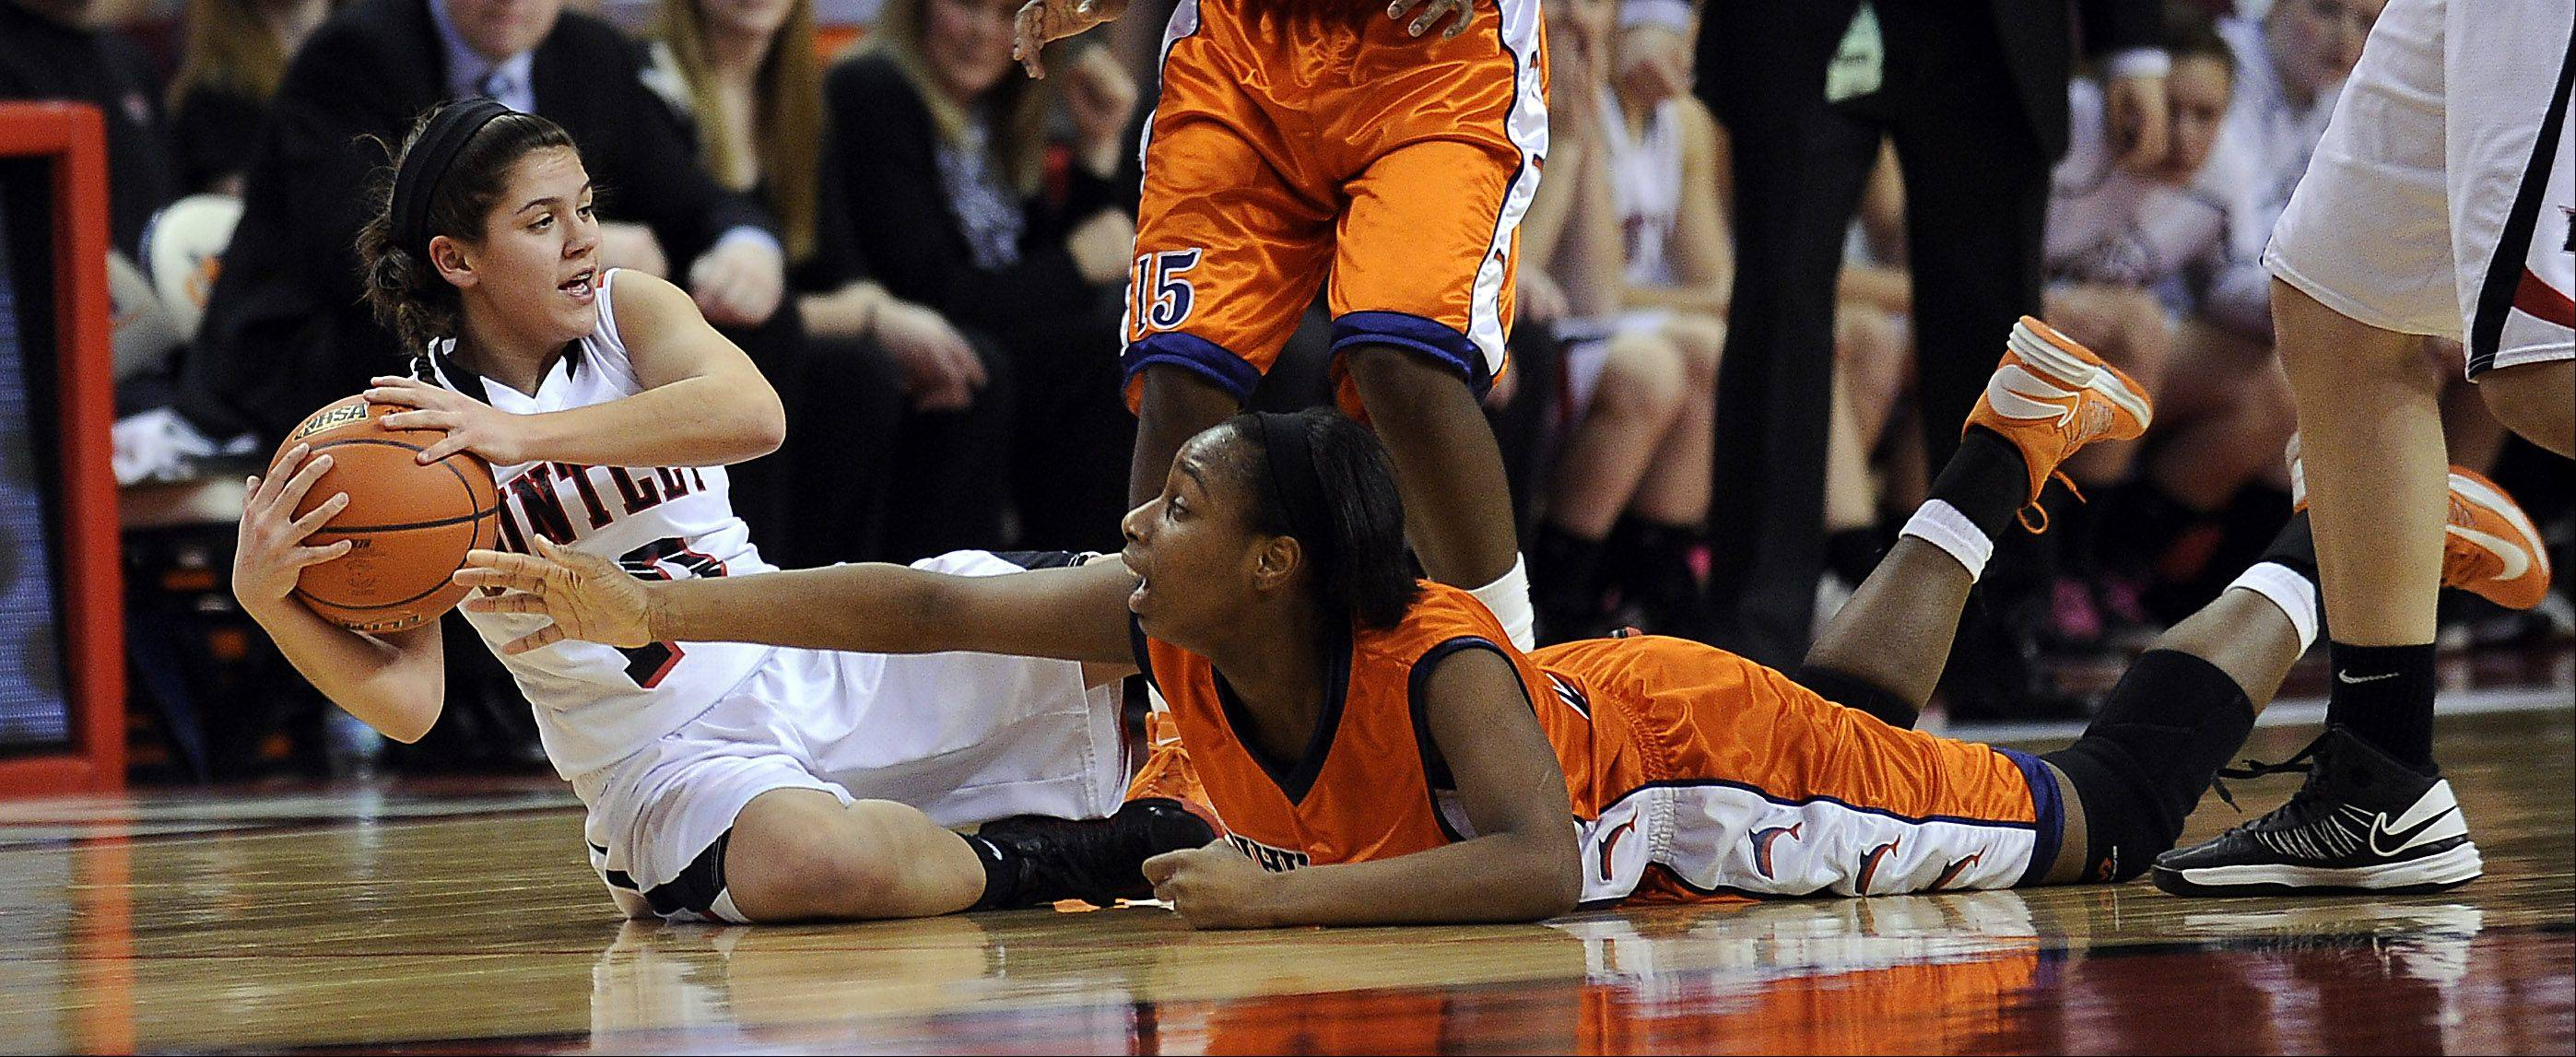 Huntley's Kayla Barreto and Whitney Young's Tanita Allen battle on the floor for a loose ball in the Class 4A third-place game in Normal on Saturday.